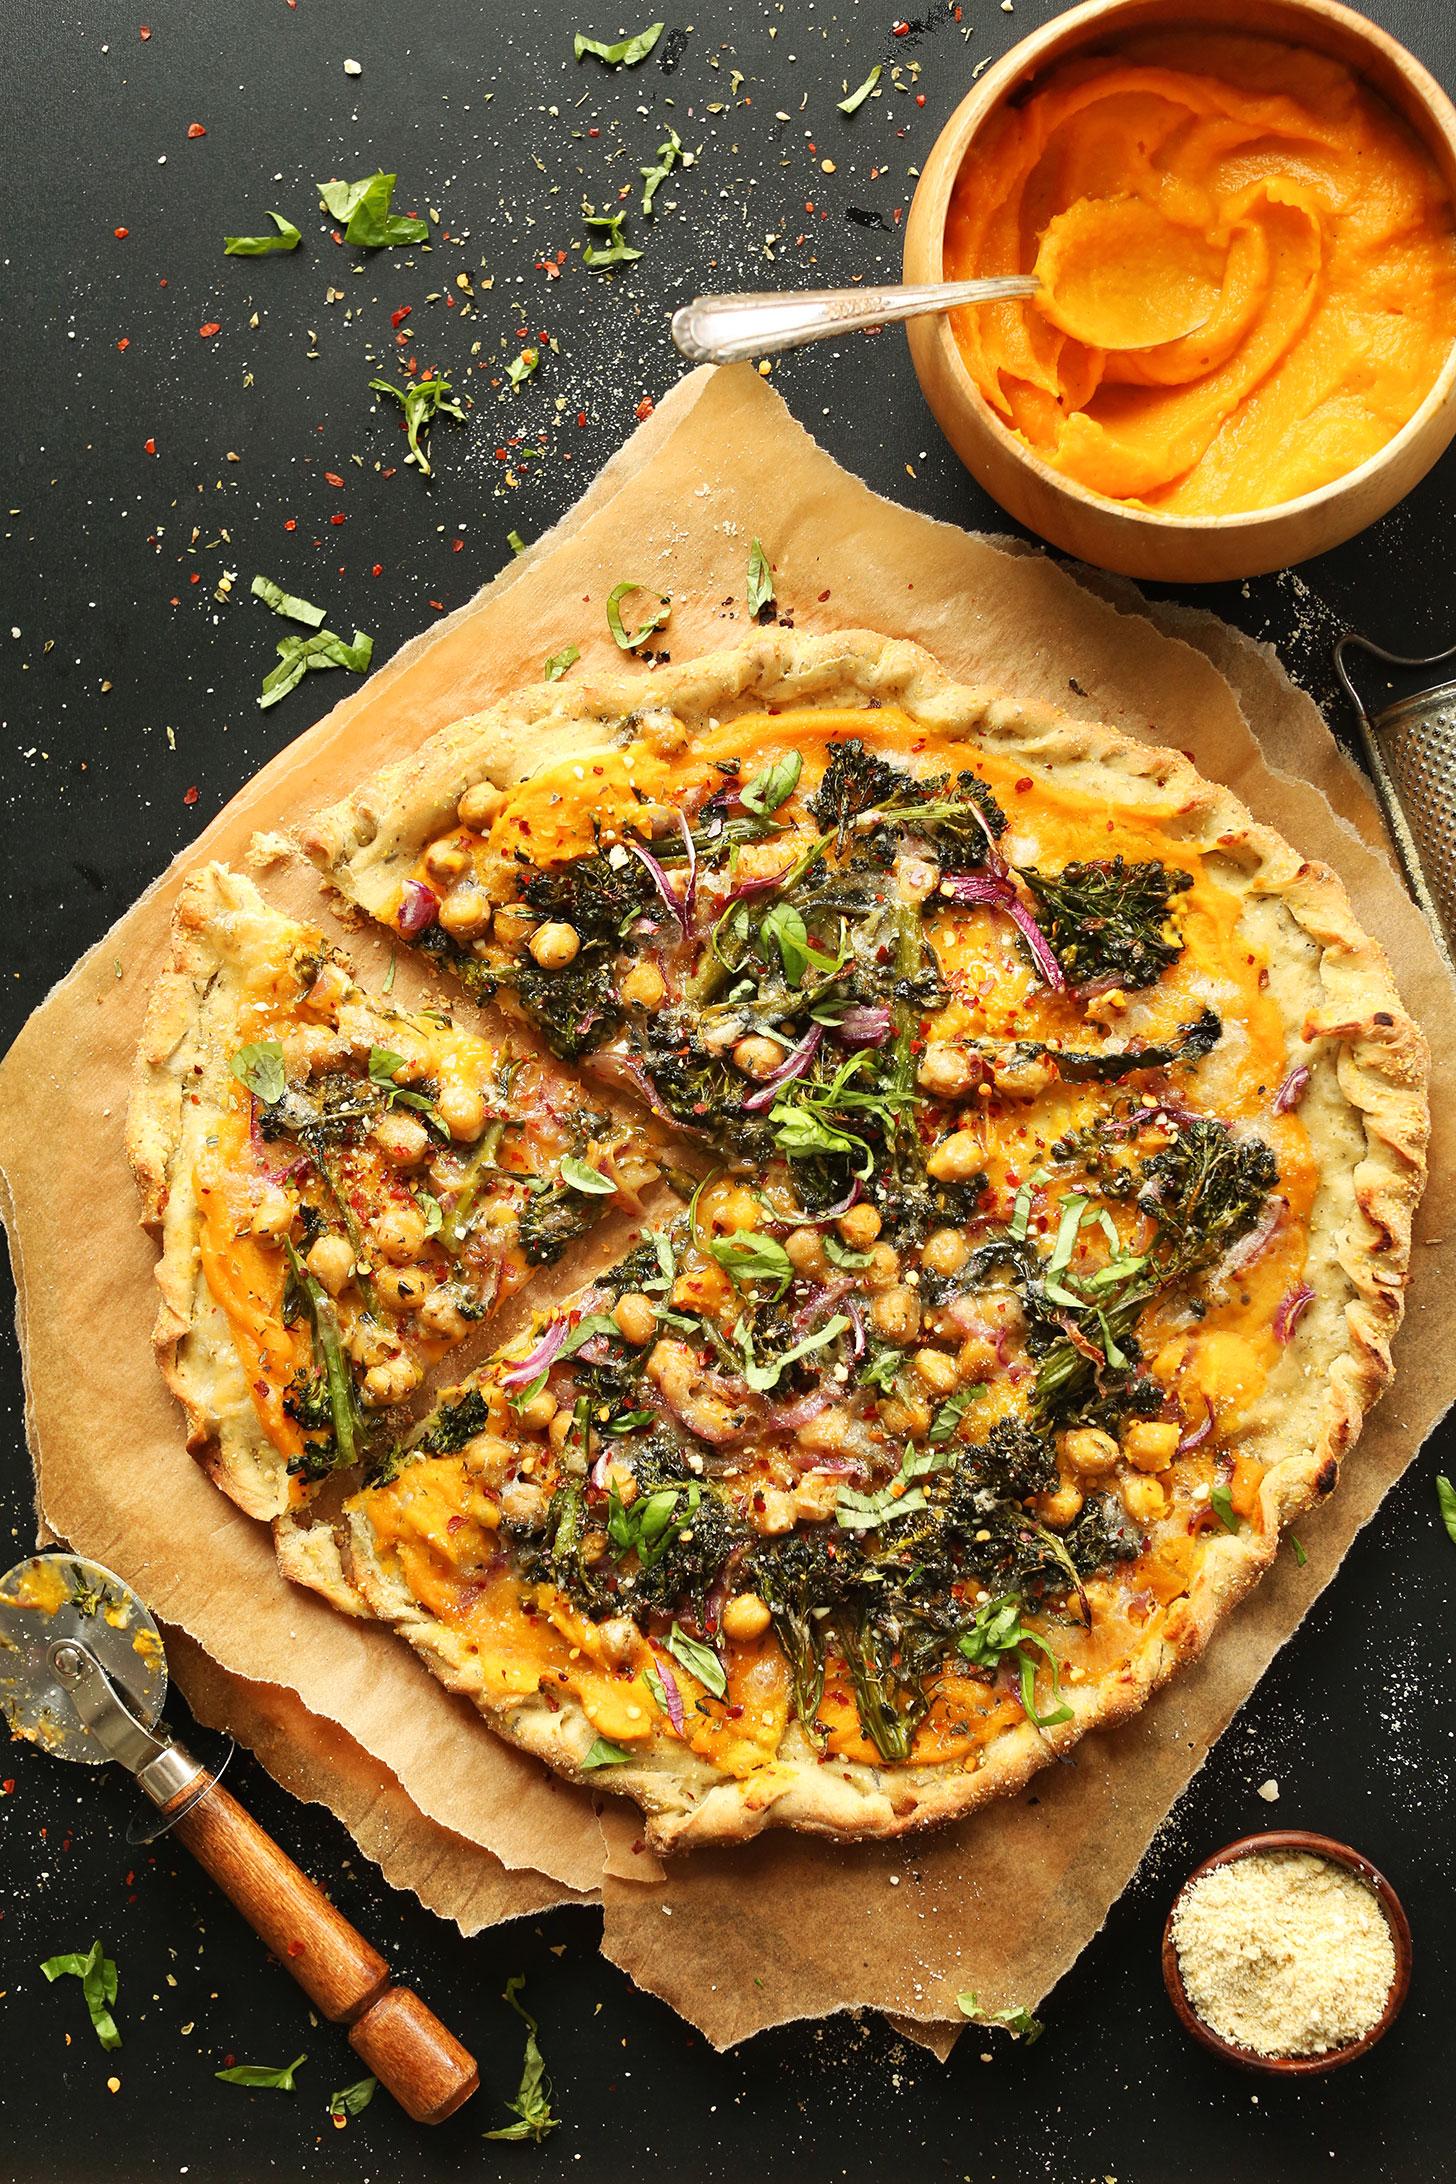 Our healthy Butternut Squash and Vegetable Pizza for a homemade vegan pizza night recipe